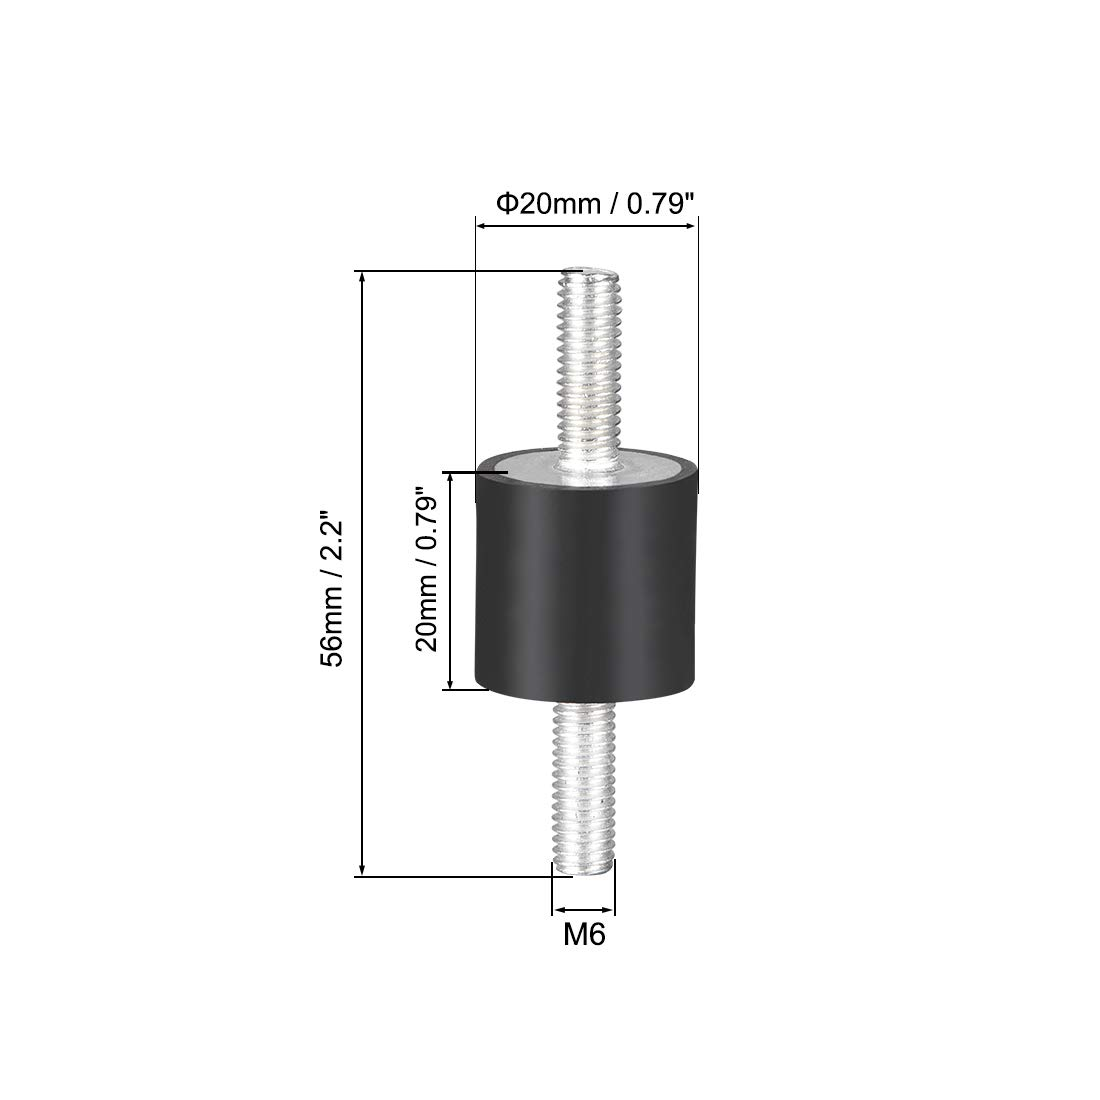 uxcell/® 20 x 20mm Rubber Mounts,Vibration Isolators,Shock Absorber with M6 x 18mm Studs 4pcs